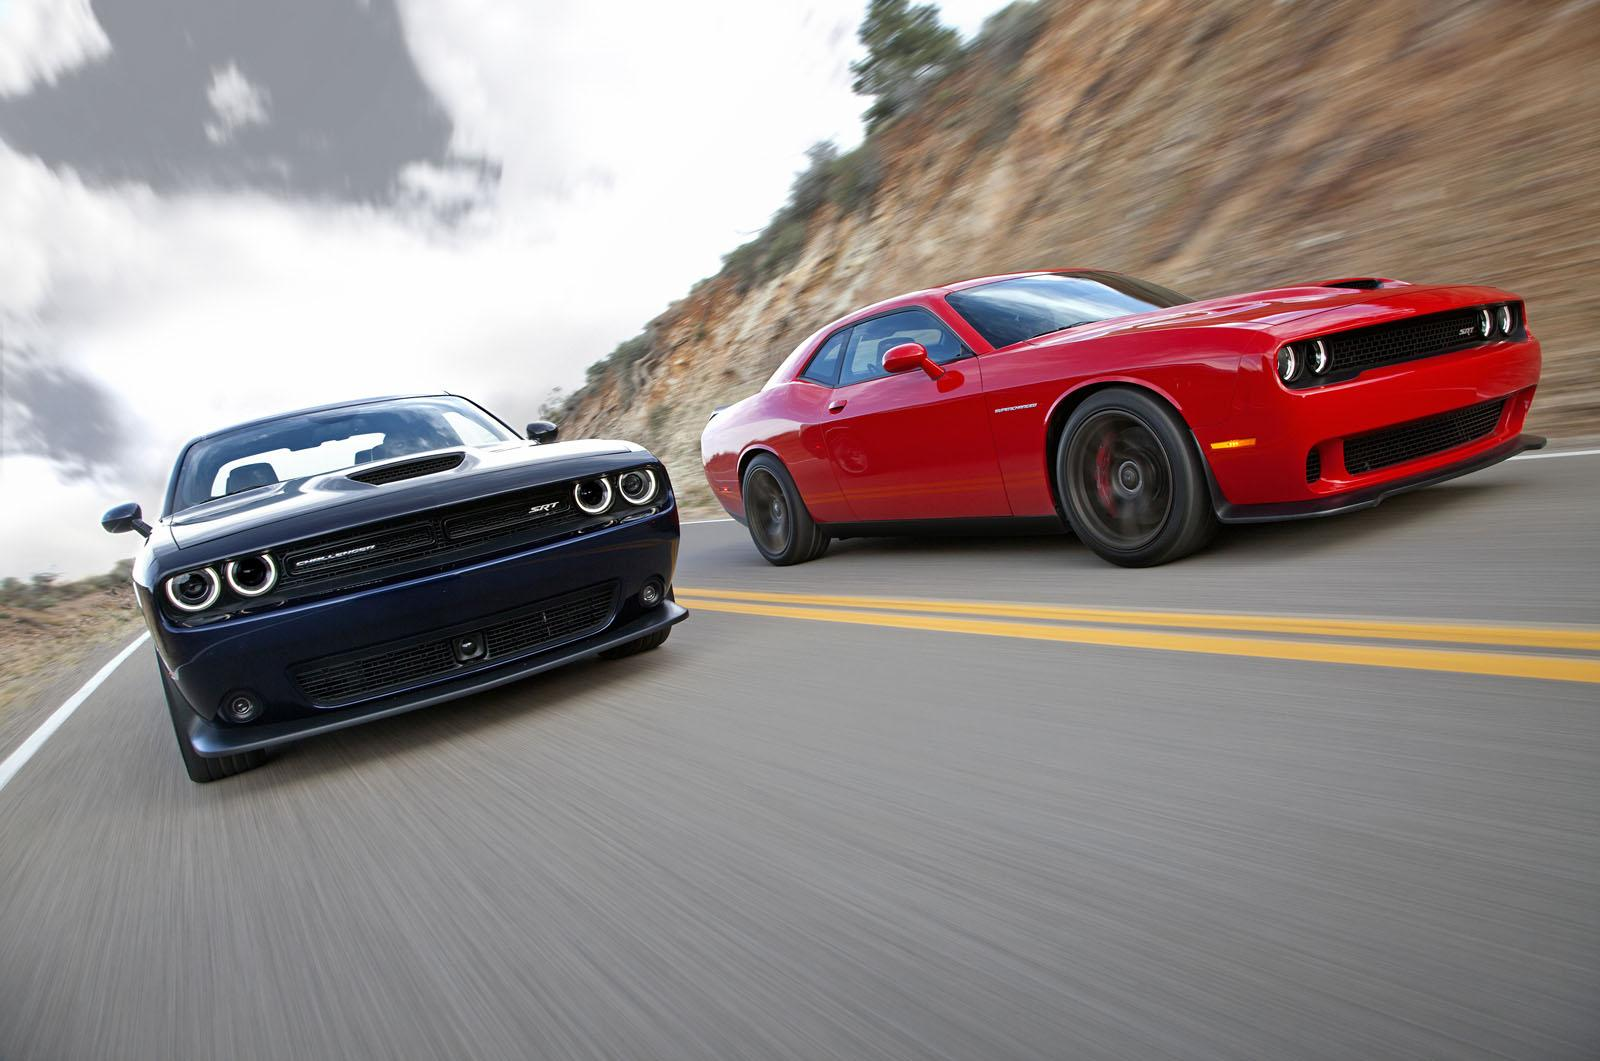 2015-Dodge-Challenger-SRT-Hellcat-black-red